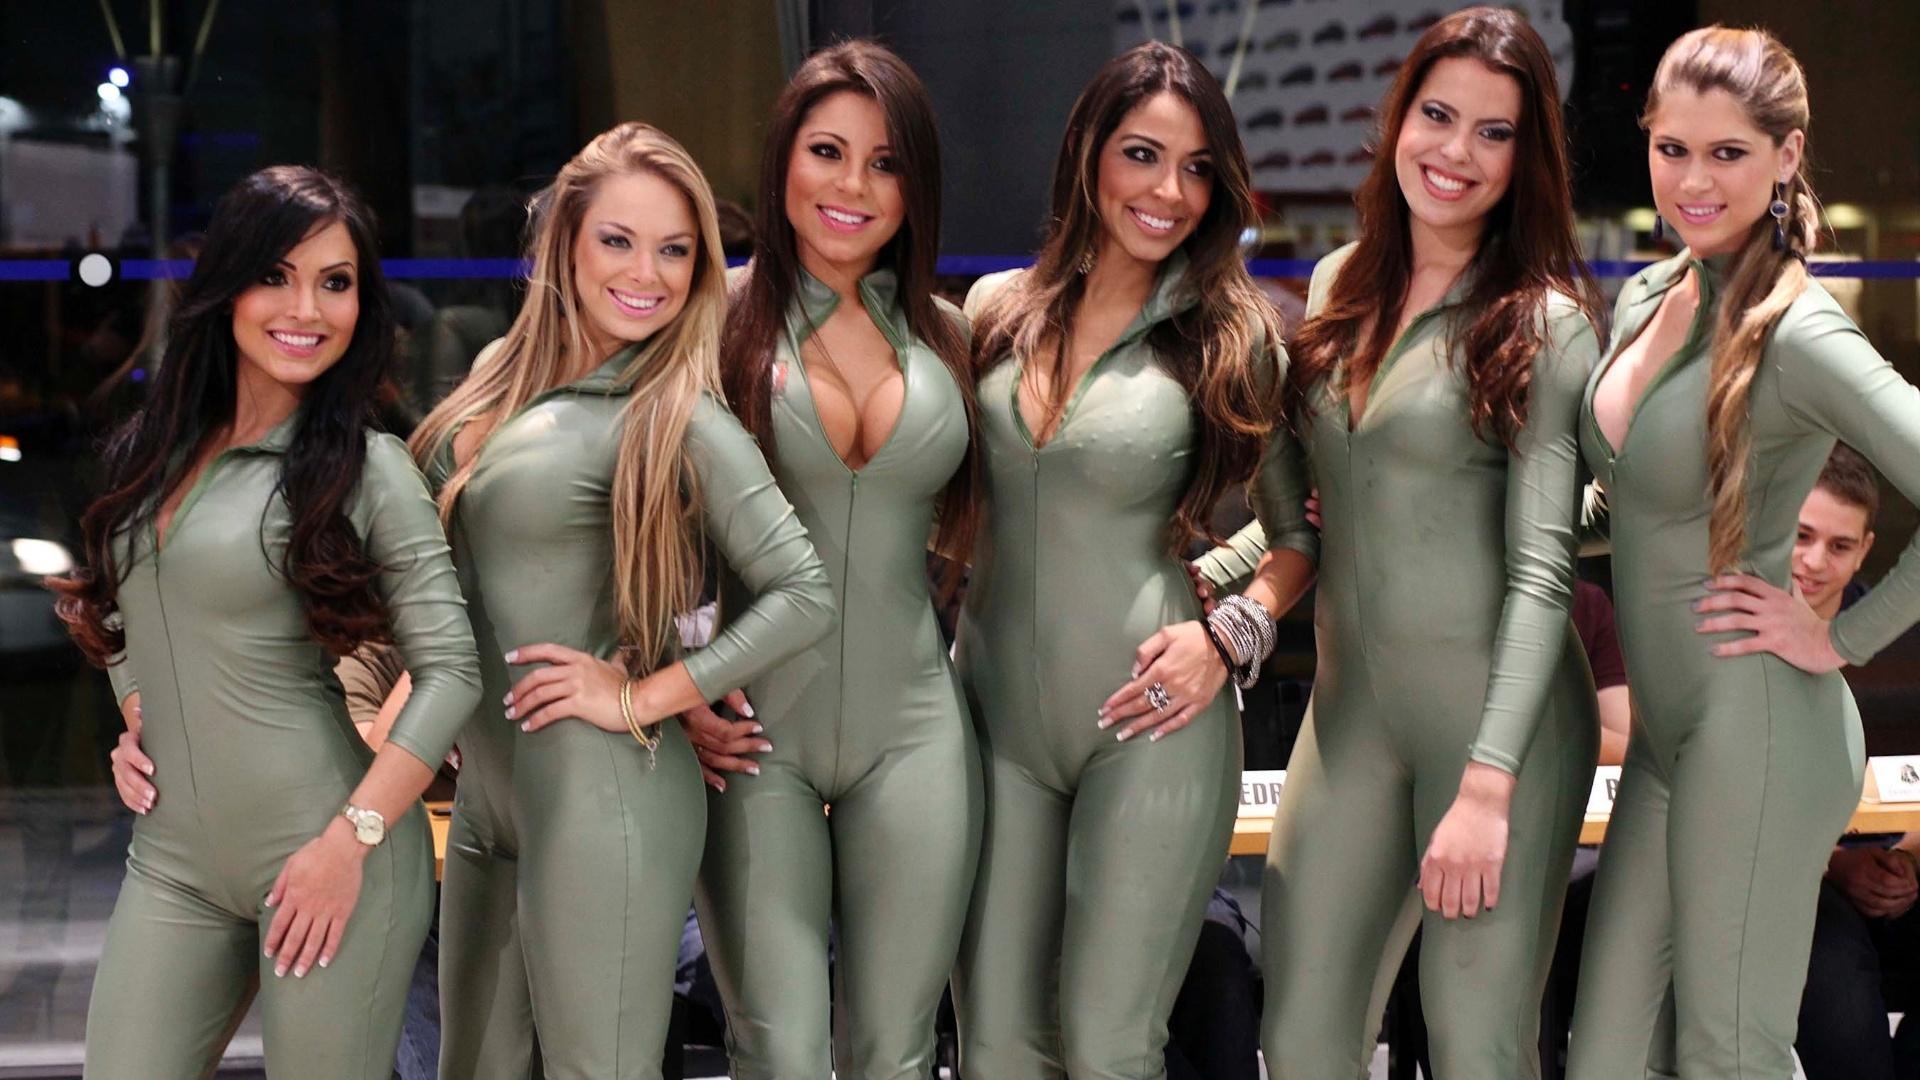 Concurso gata da Frmula Indy tem belas candidatas